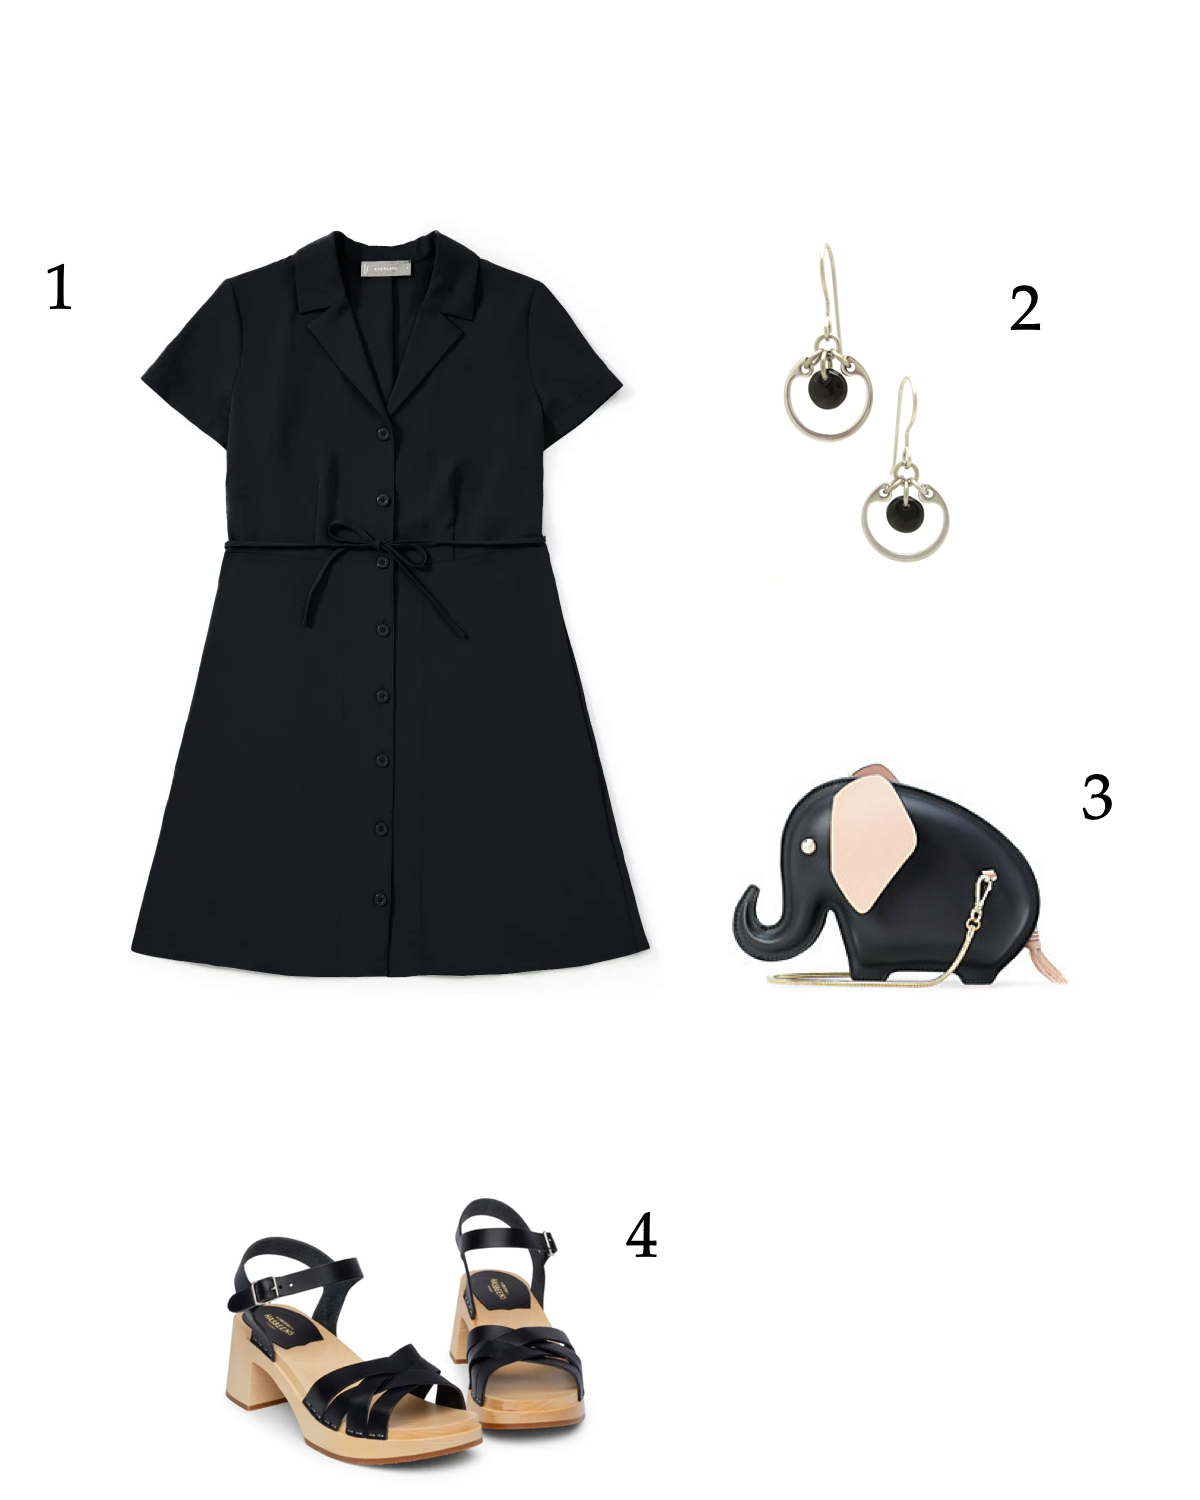 Summer black outfit idea for a fun lunch with friends: black dress, classic black earrings, black clog sandals, and a Kate Spade elephant bag.